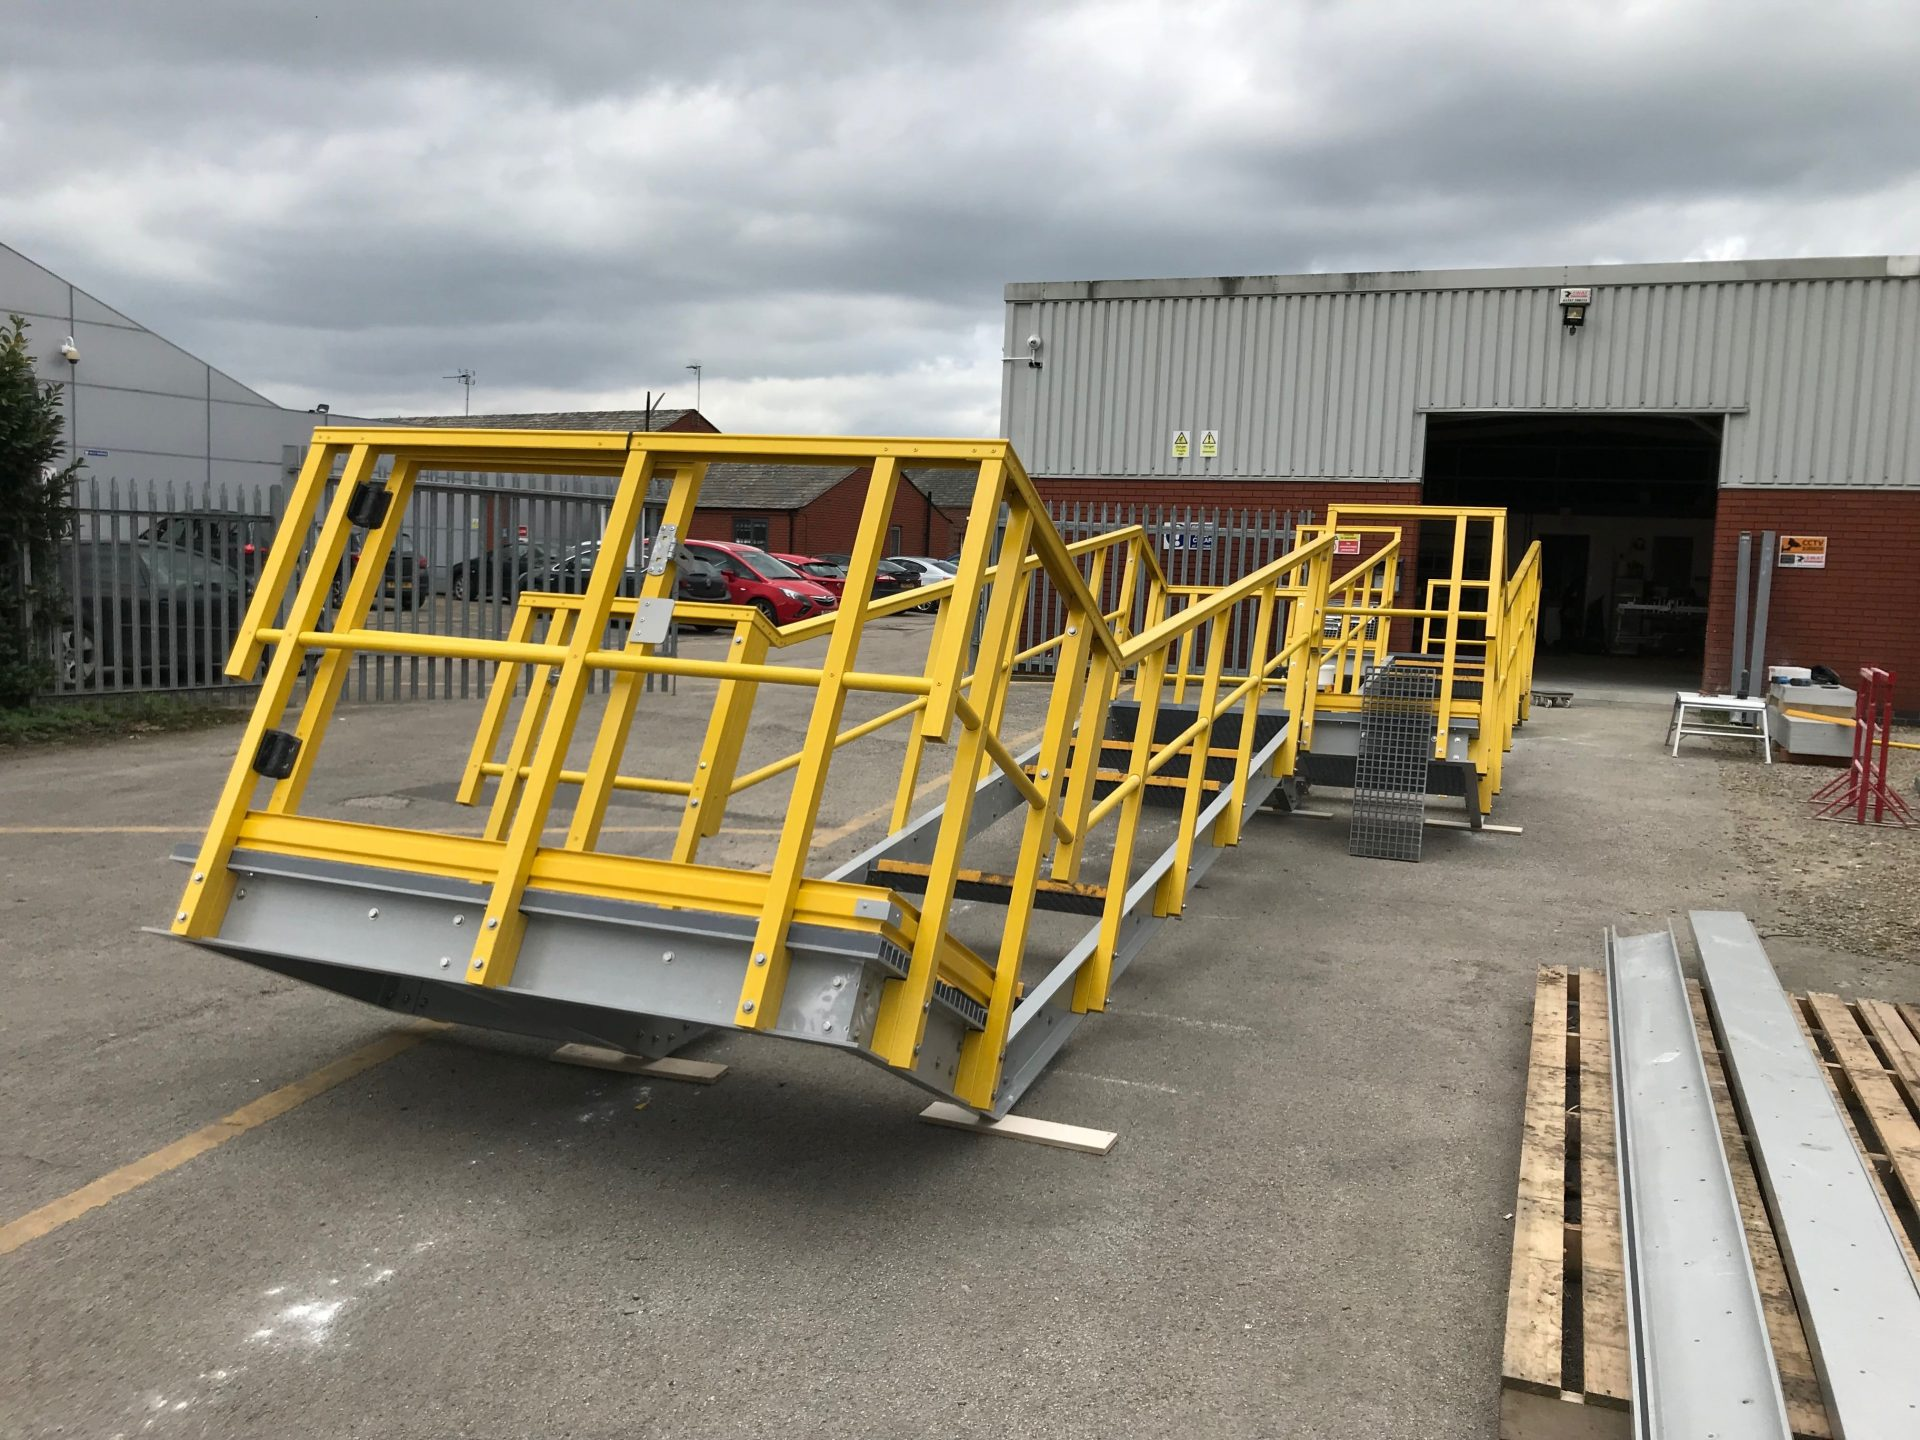 Fibreglass embankment staircase for disassembly prior to shipment